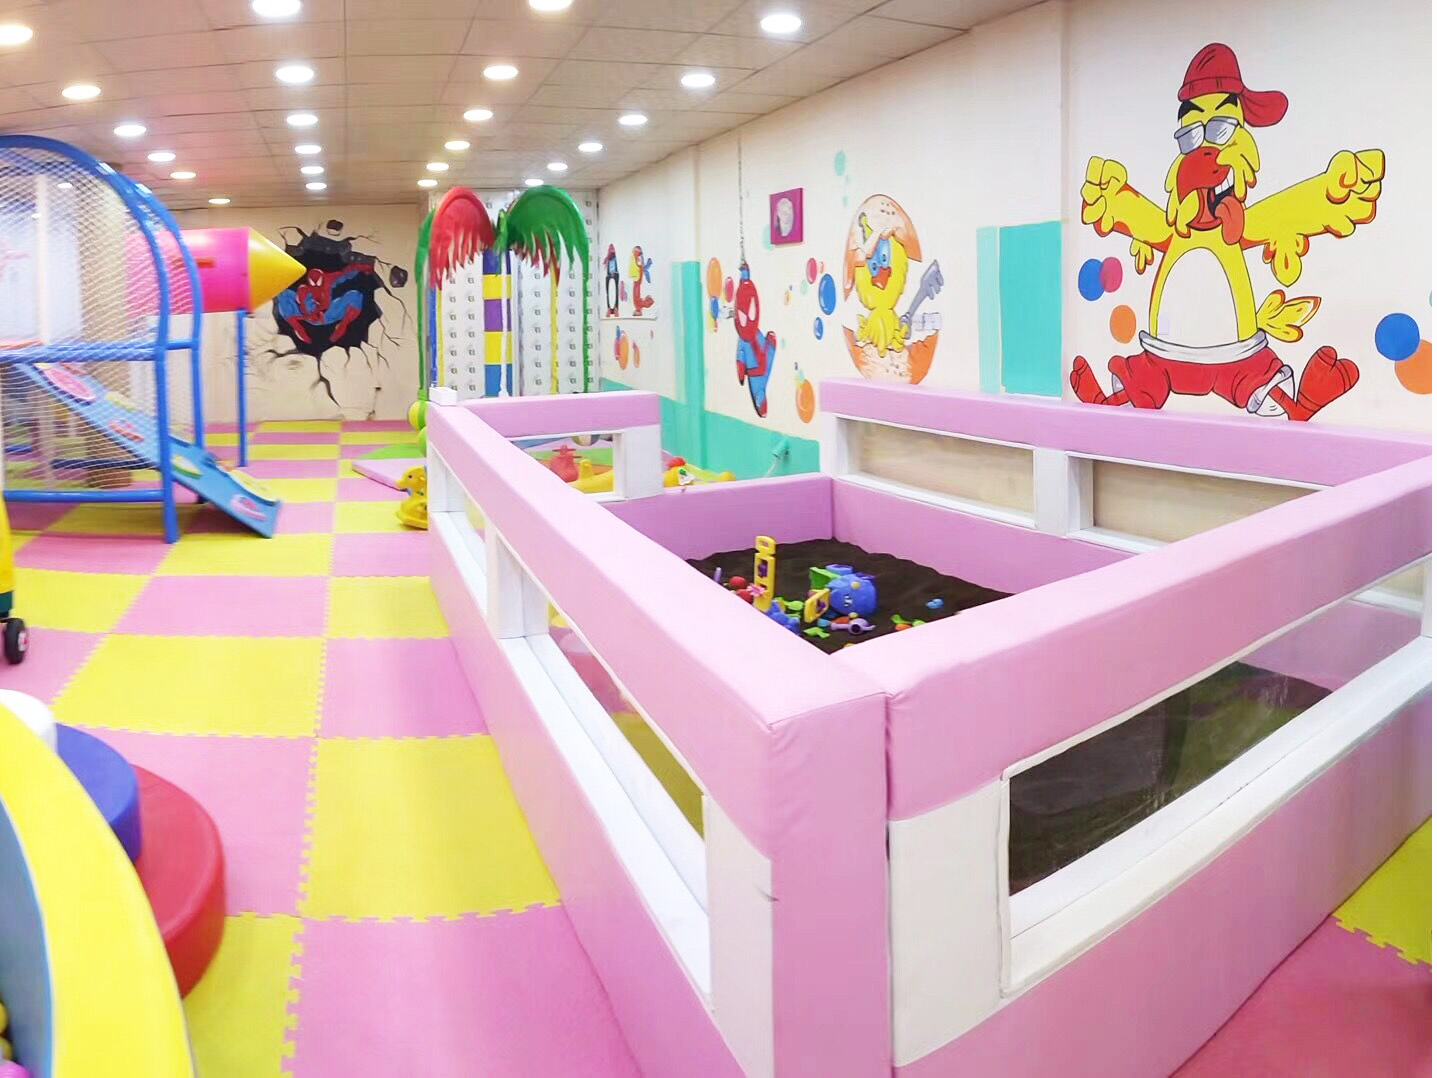 Rest Area of Candy theme indoor playground